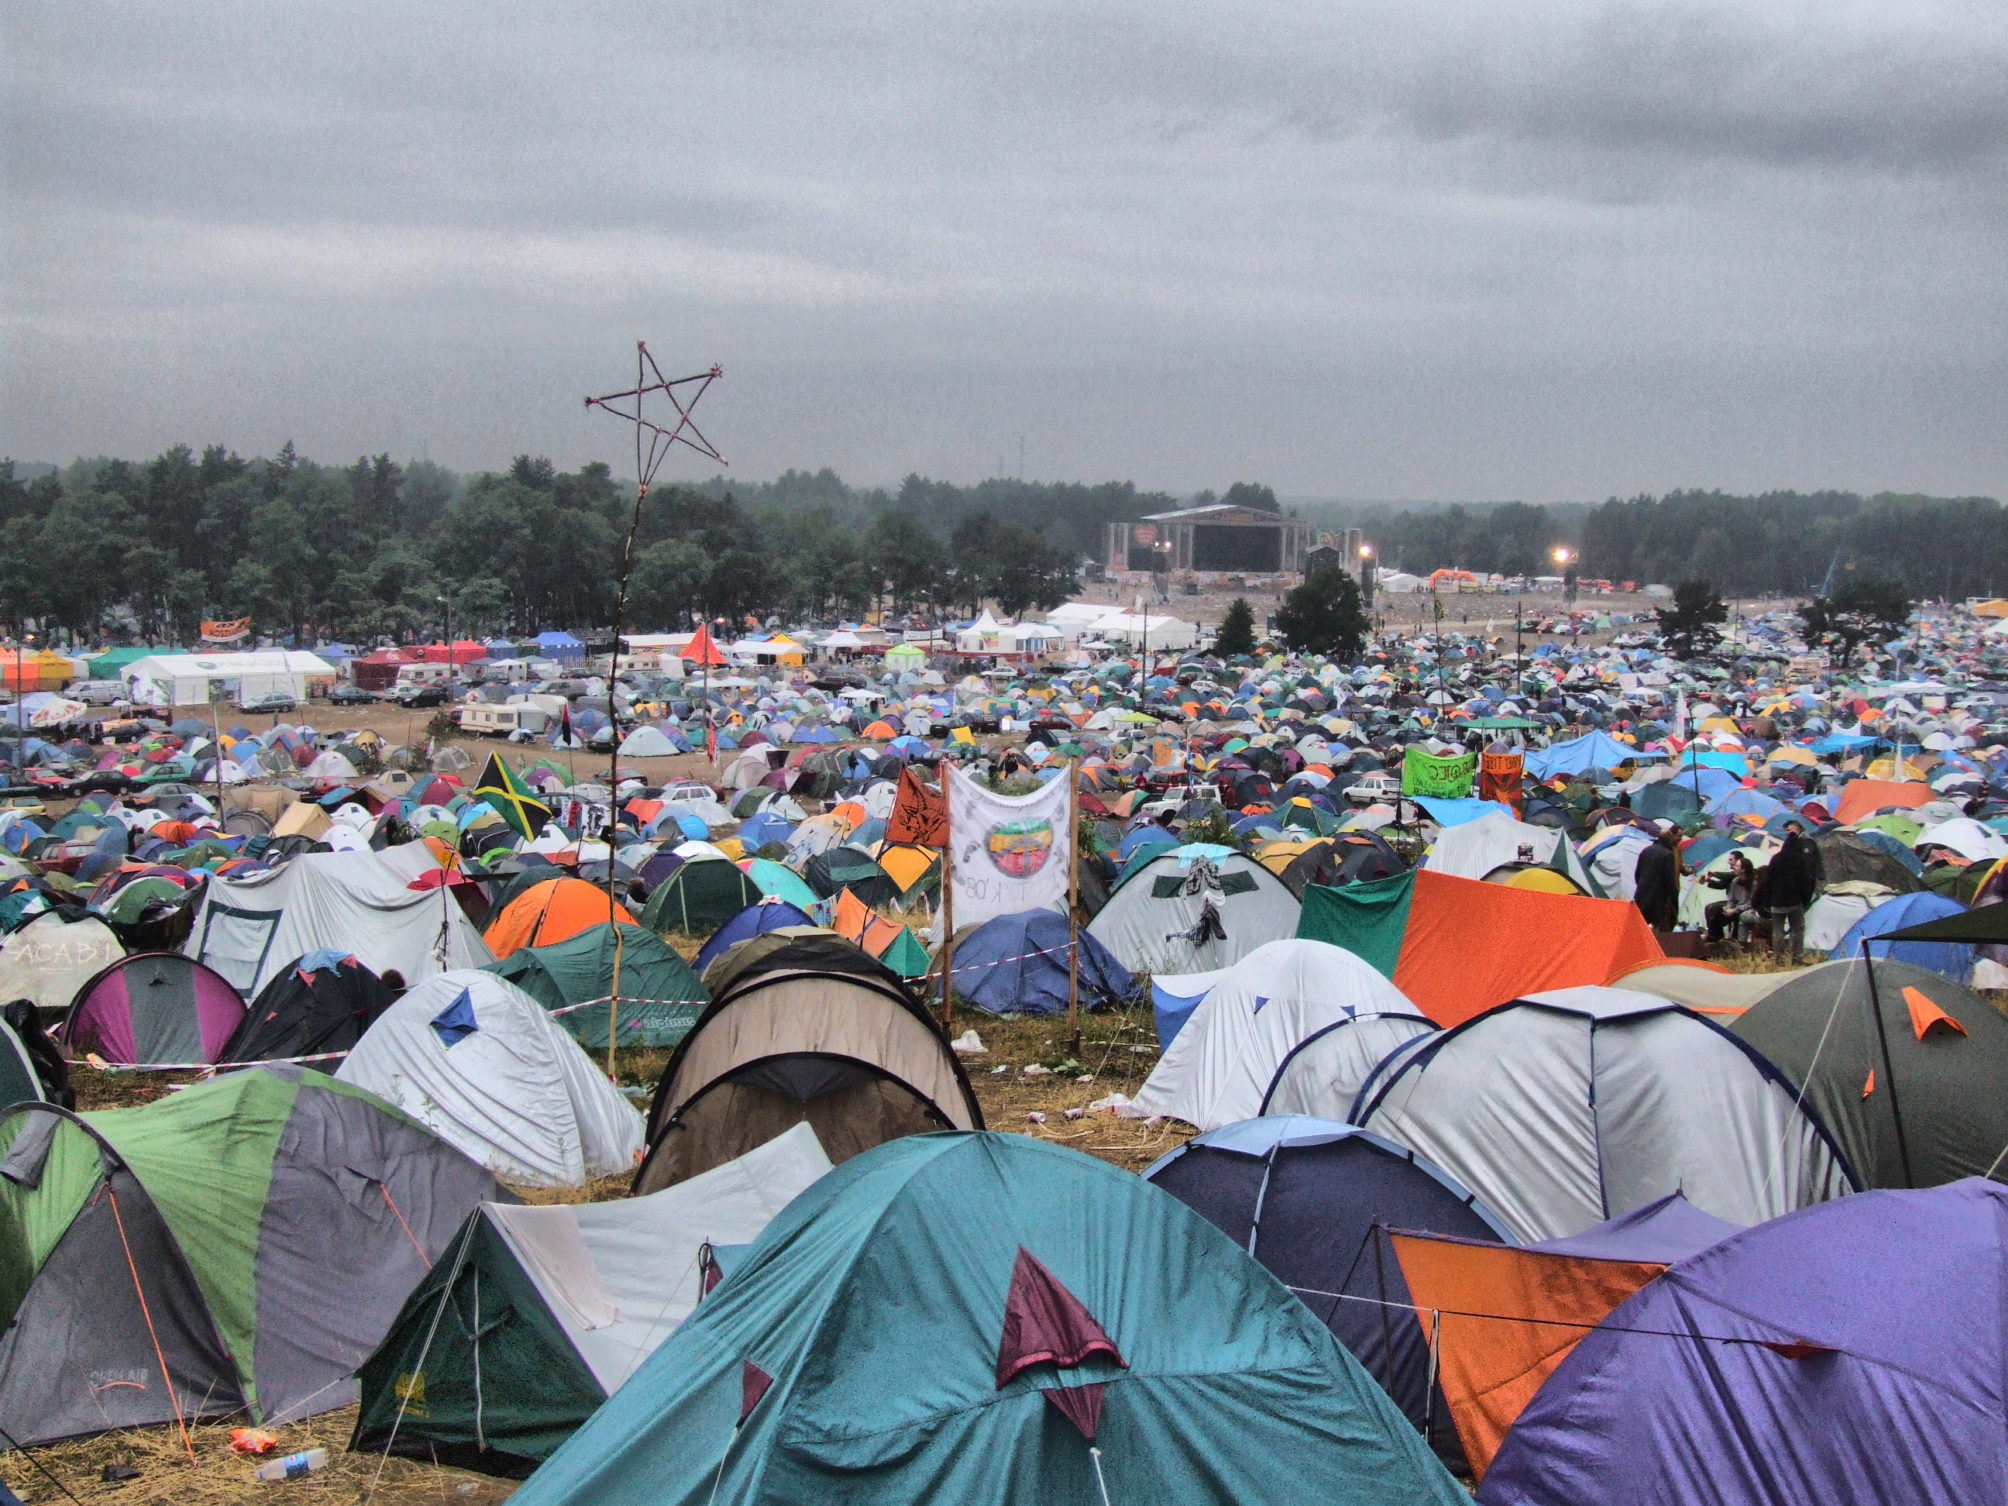 Woodstock organisers announce of getting new funding for show